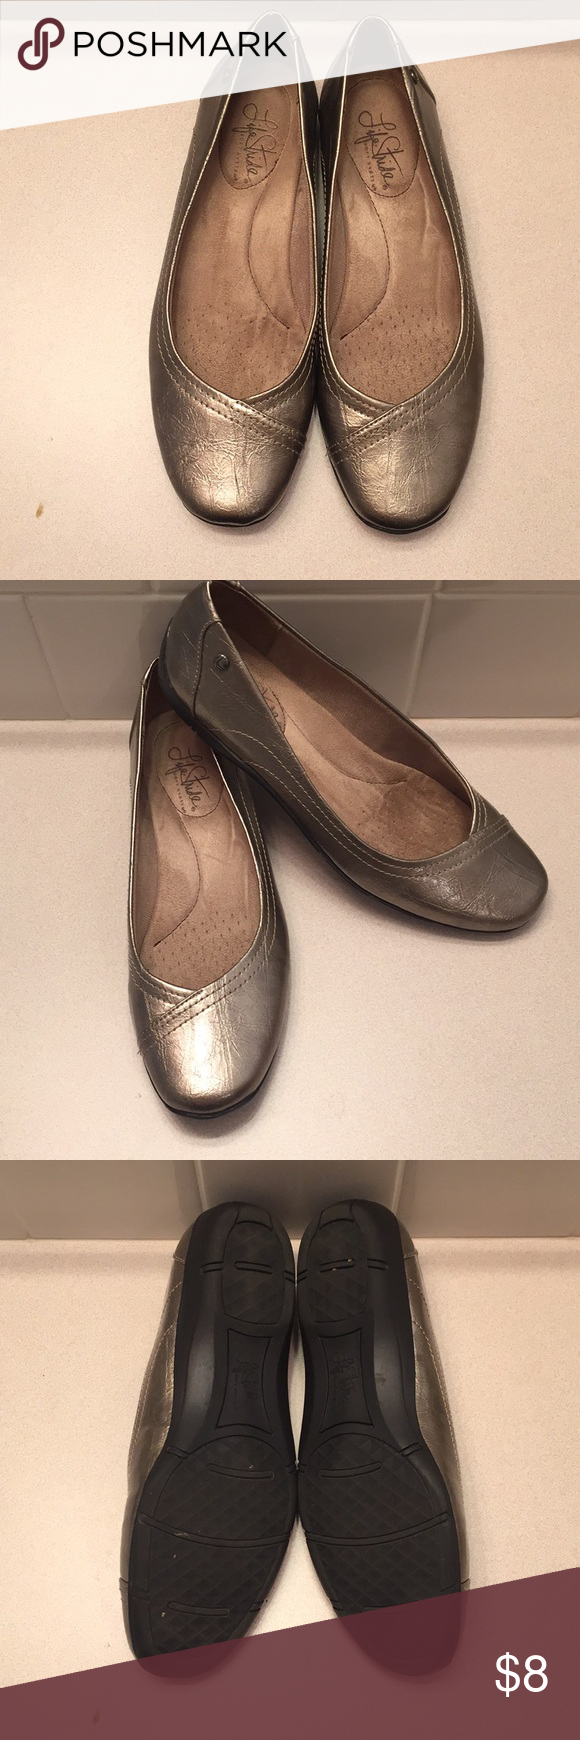 Life stride flats Only been worn twice with no damage. The soles look brand new and has a comfy inside. Life Stride Shoes Flats & Loafers